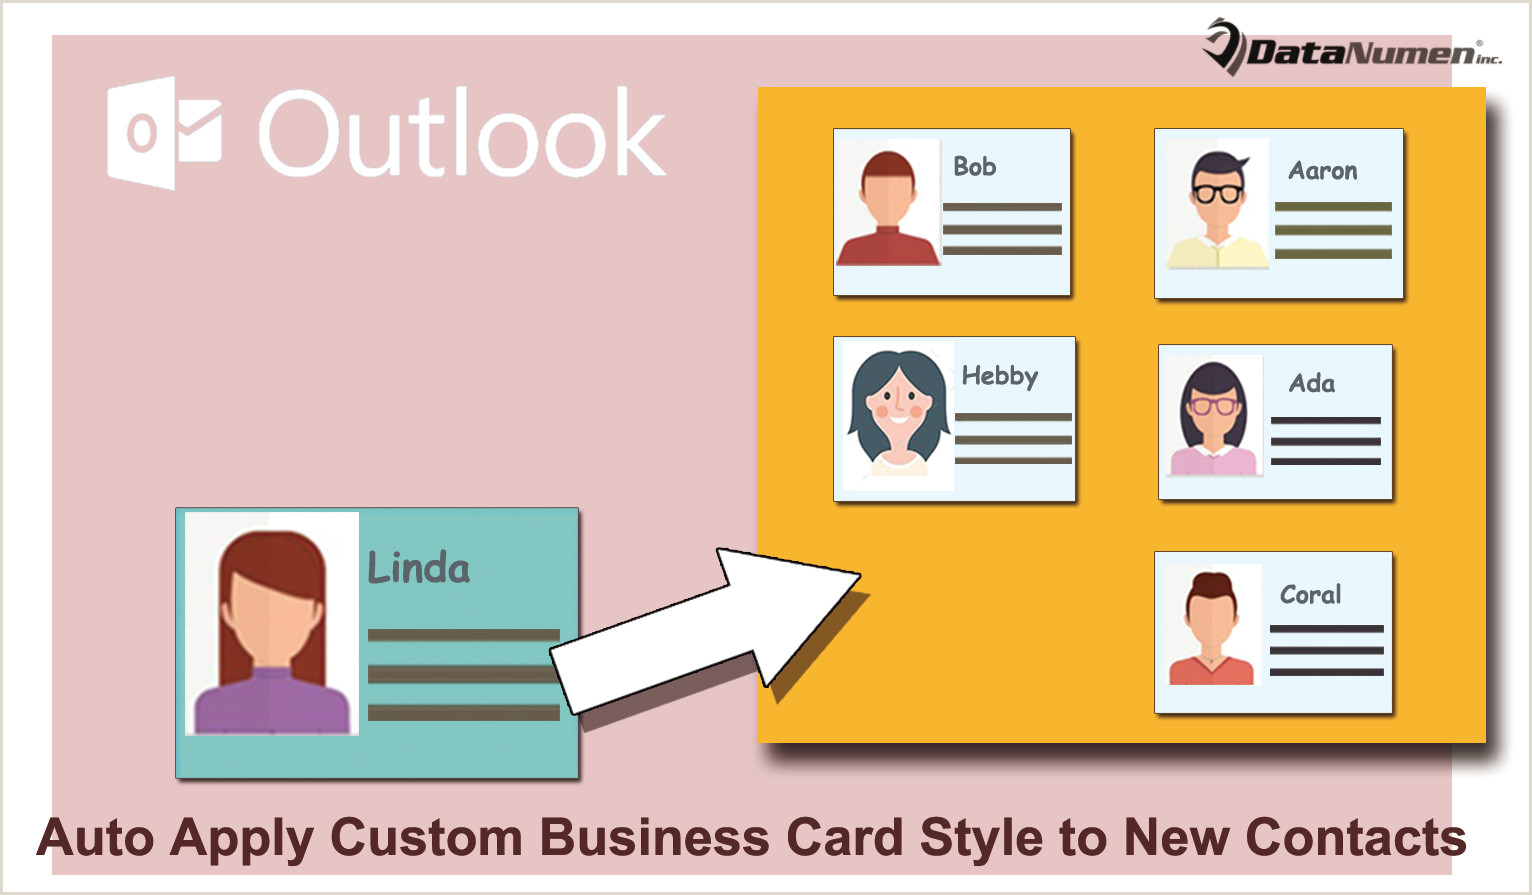 Business Card Contact Info 2 Ways To Auto Apply A Custom Business Card Style To New